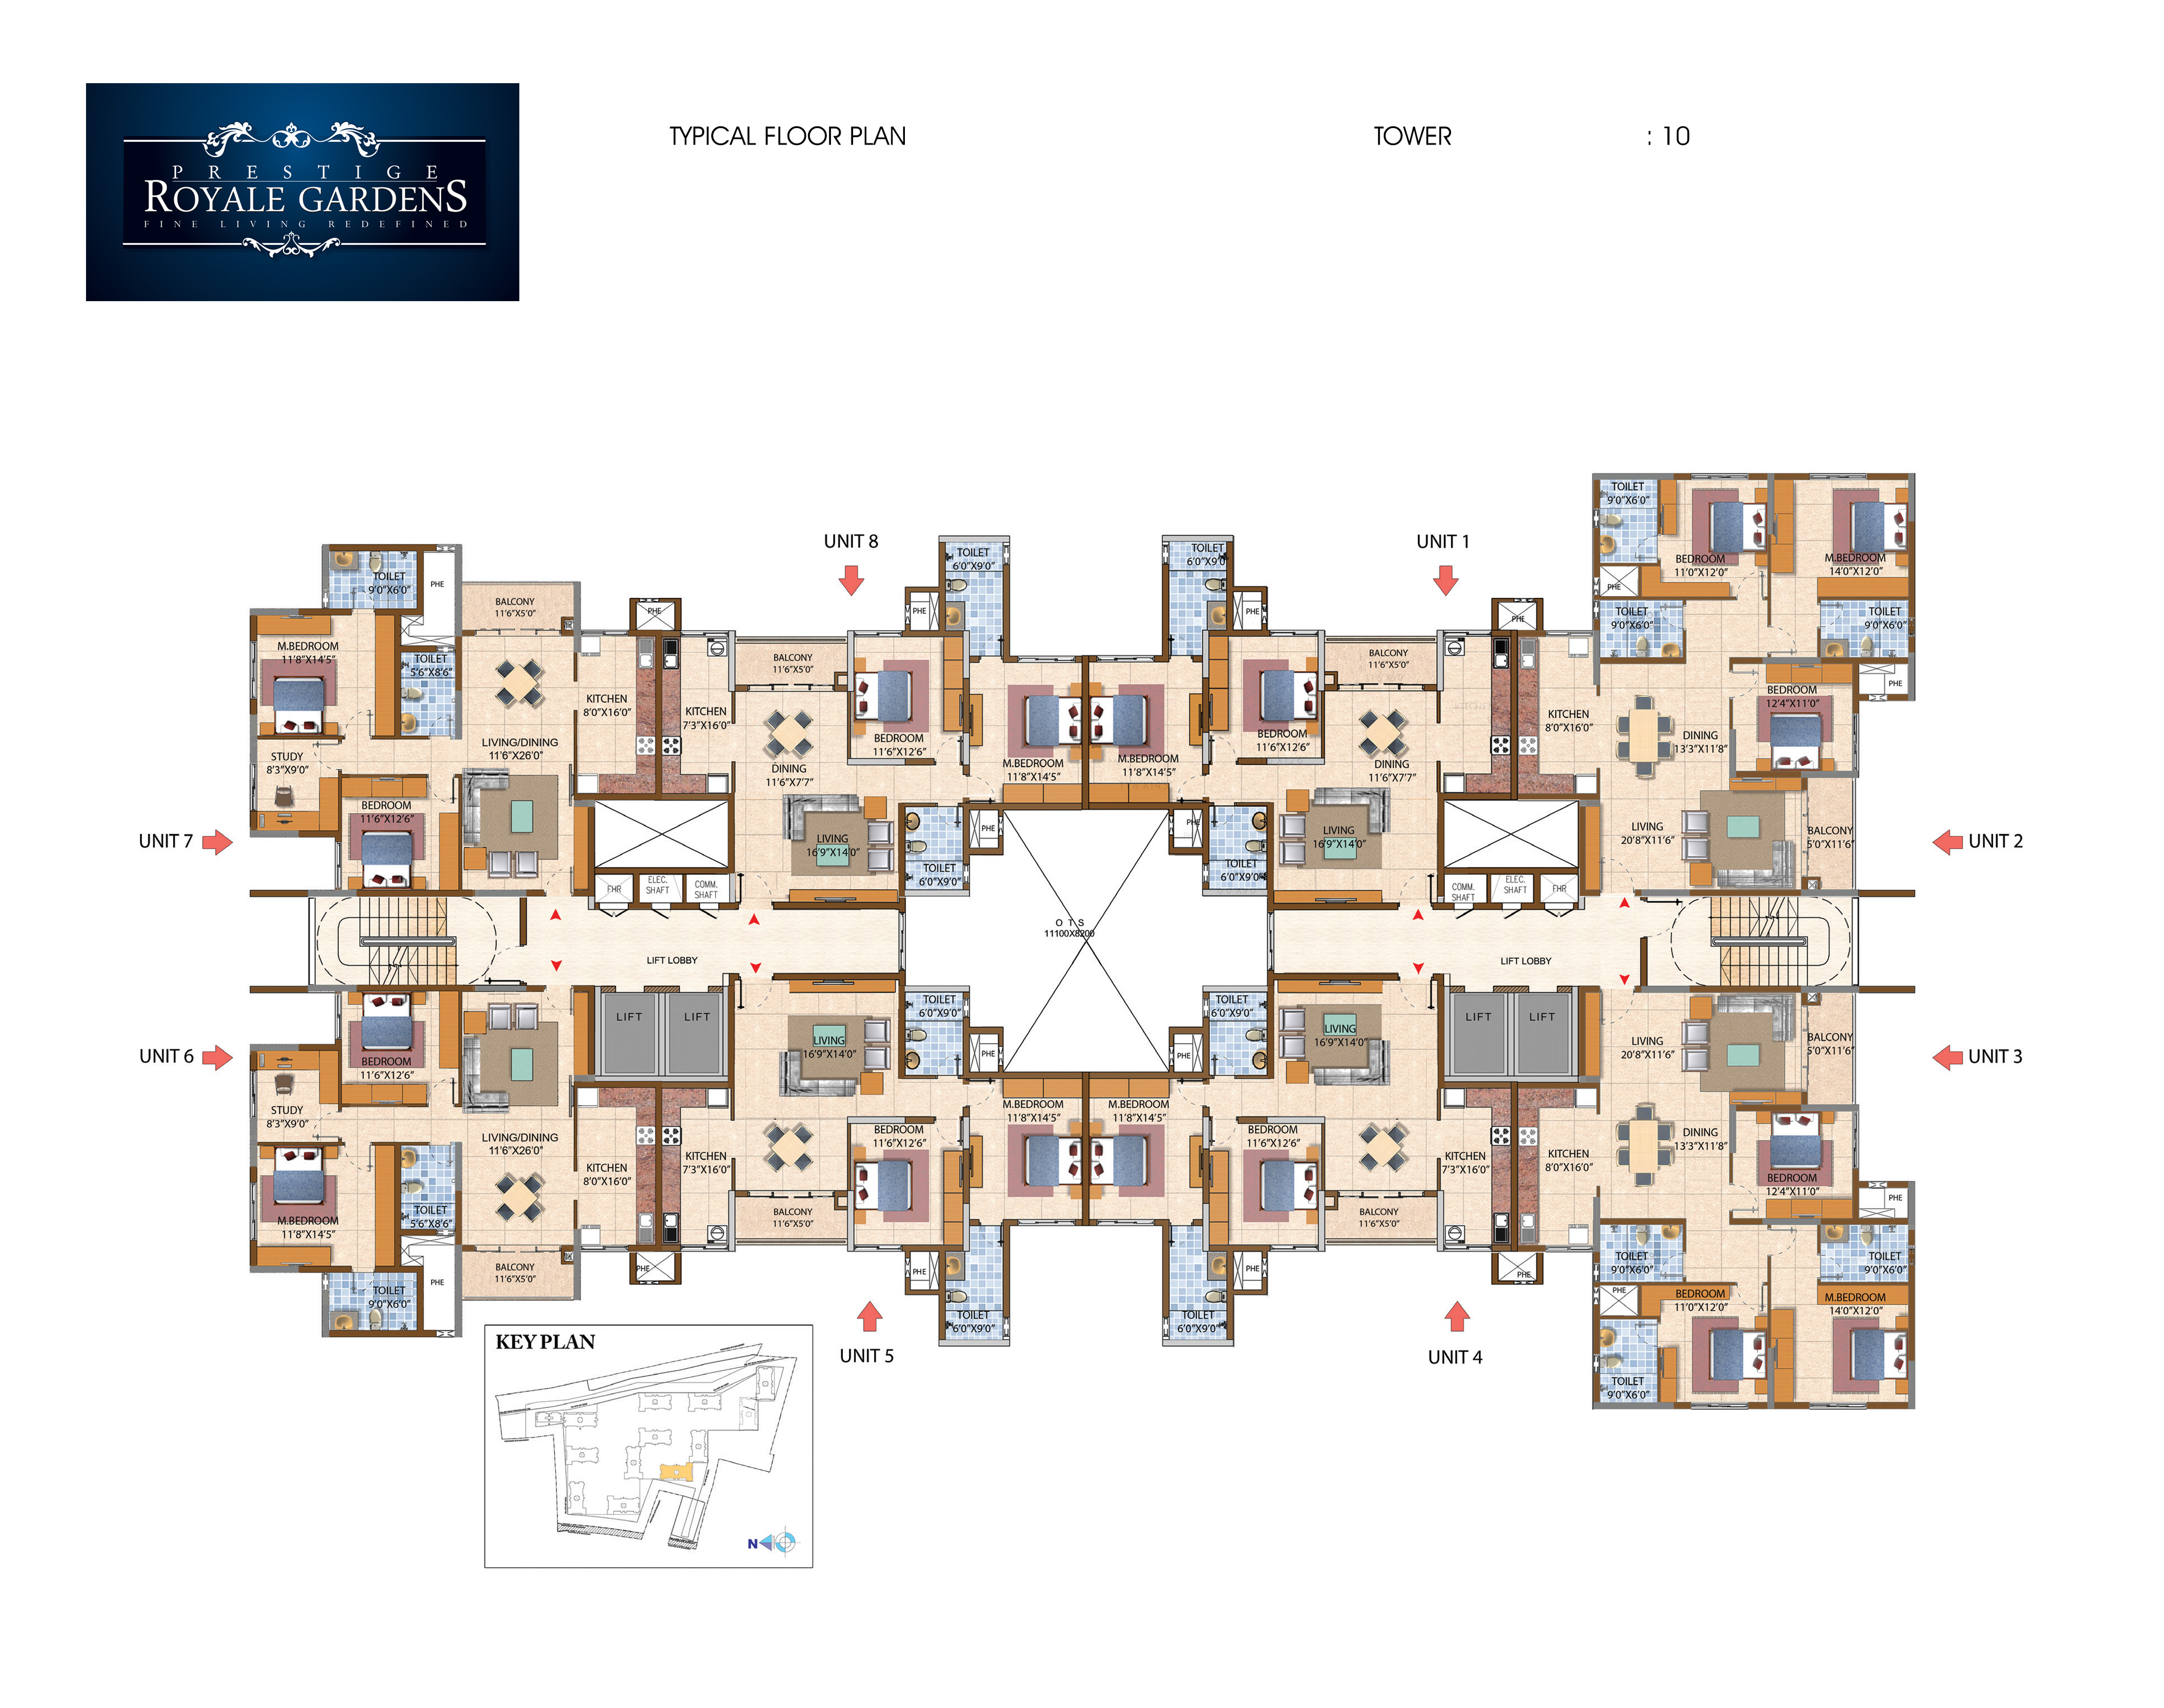 Prestige Royale Gardens - Typical Floor Plan, Tower 10